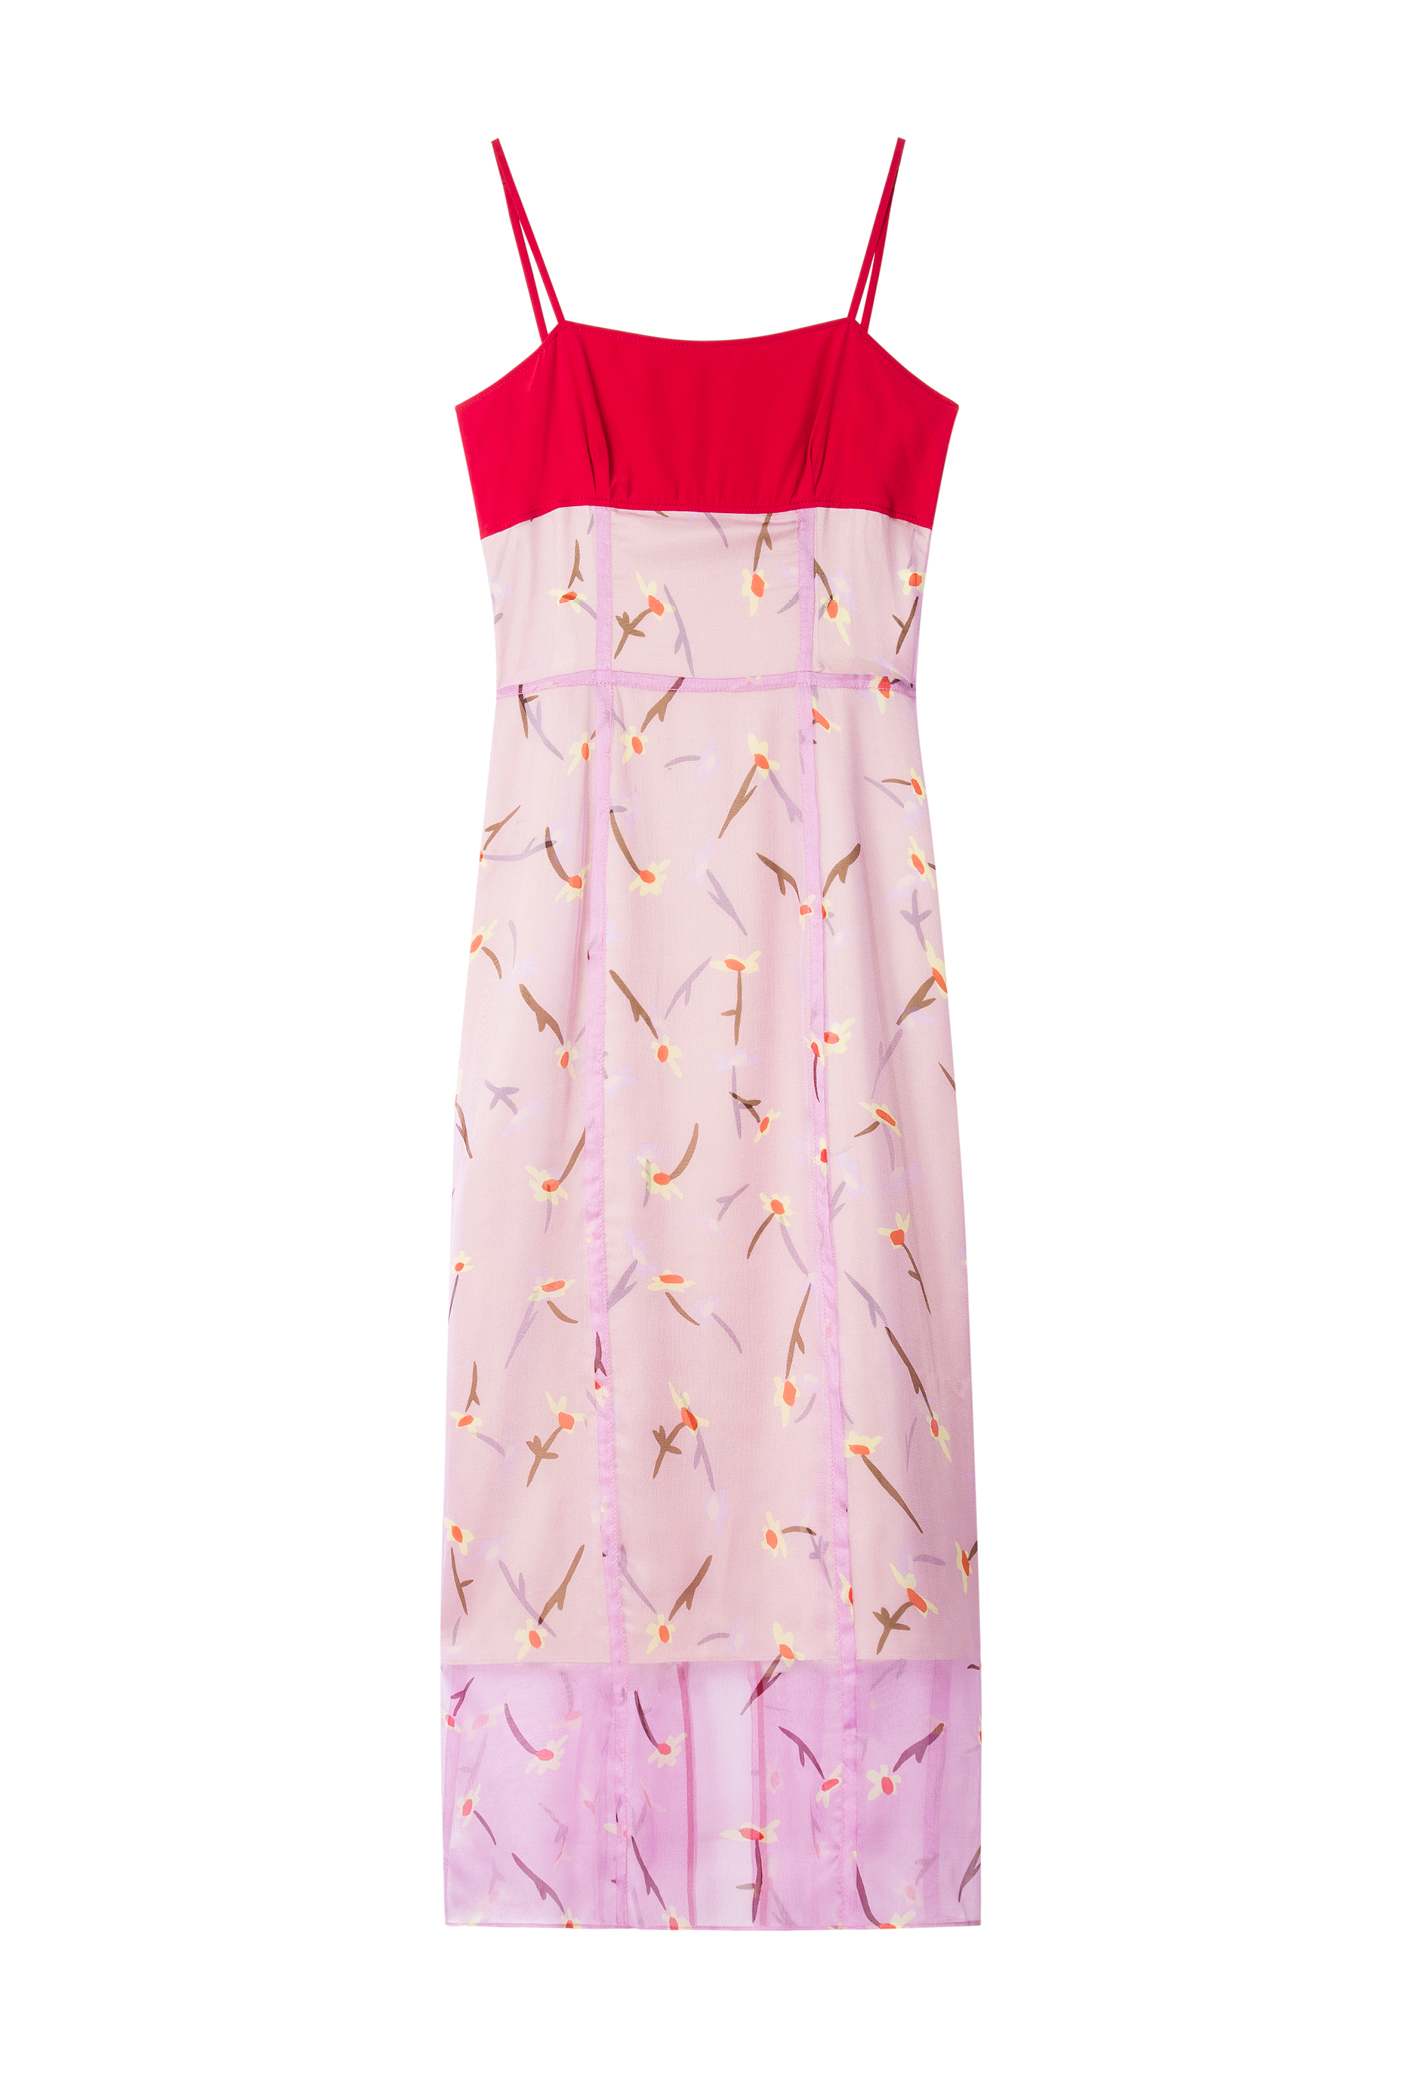 A floral dress by Paul Smith